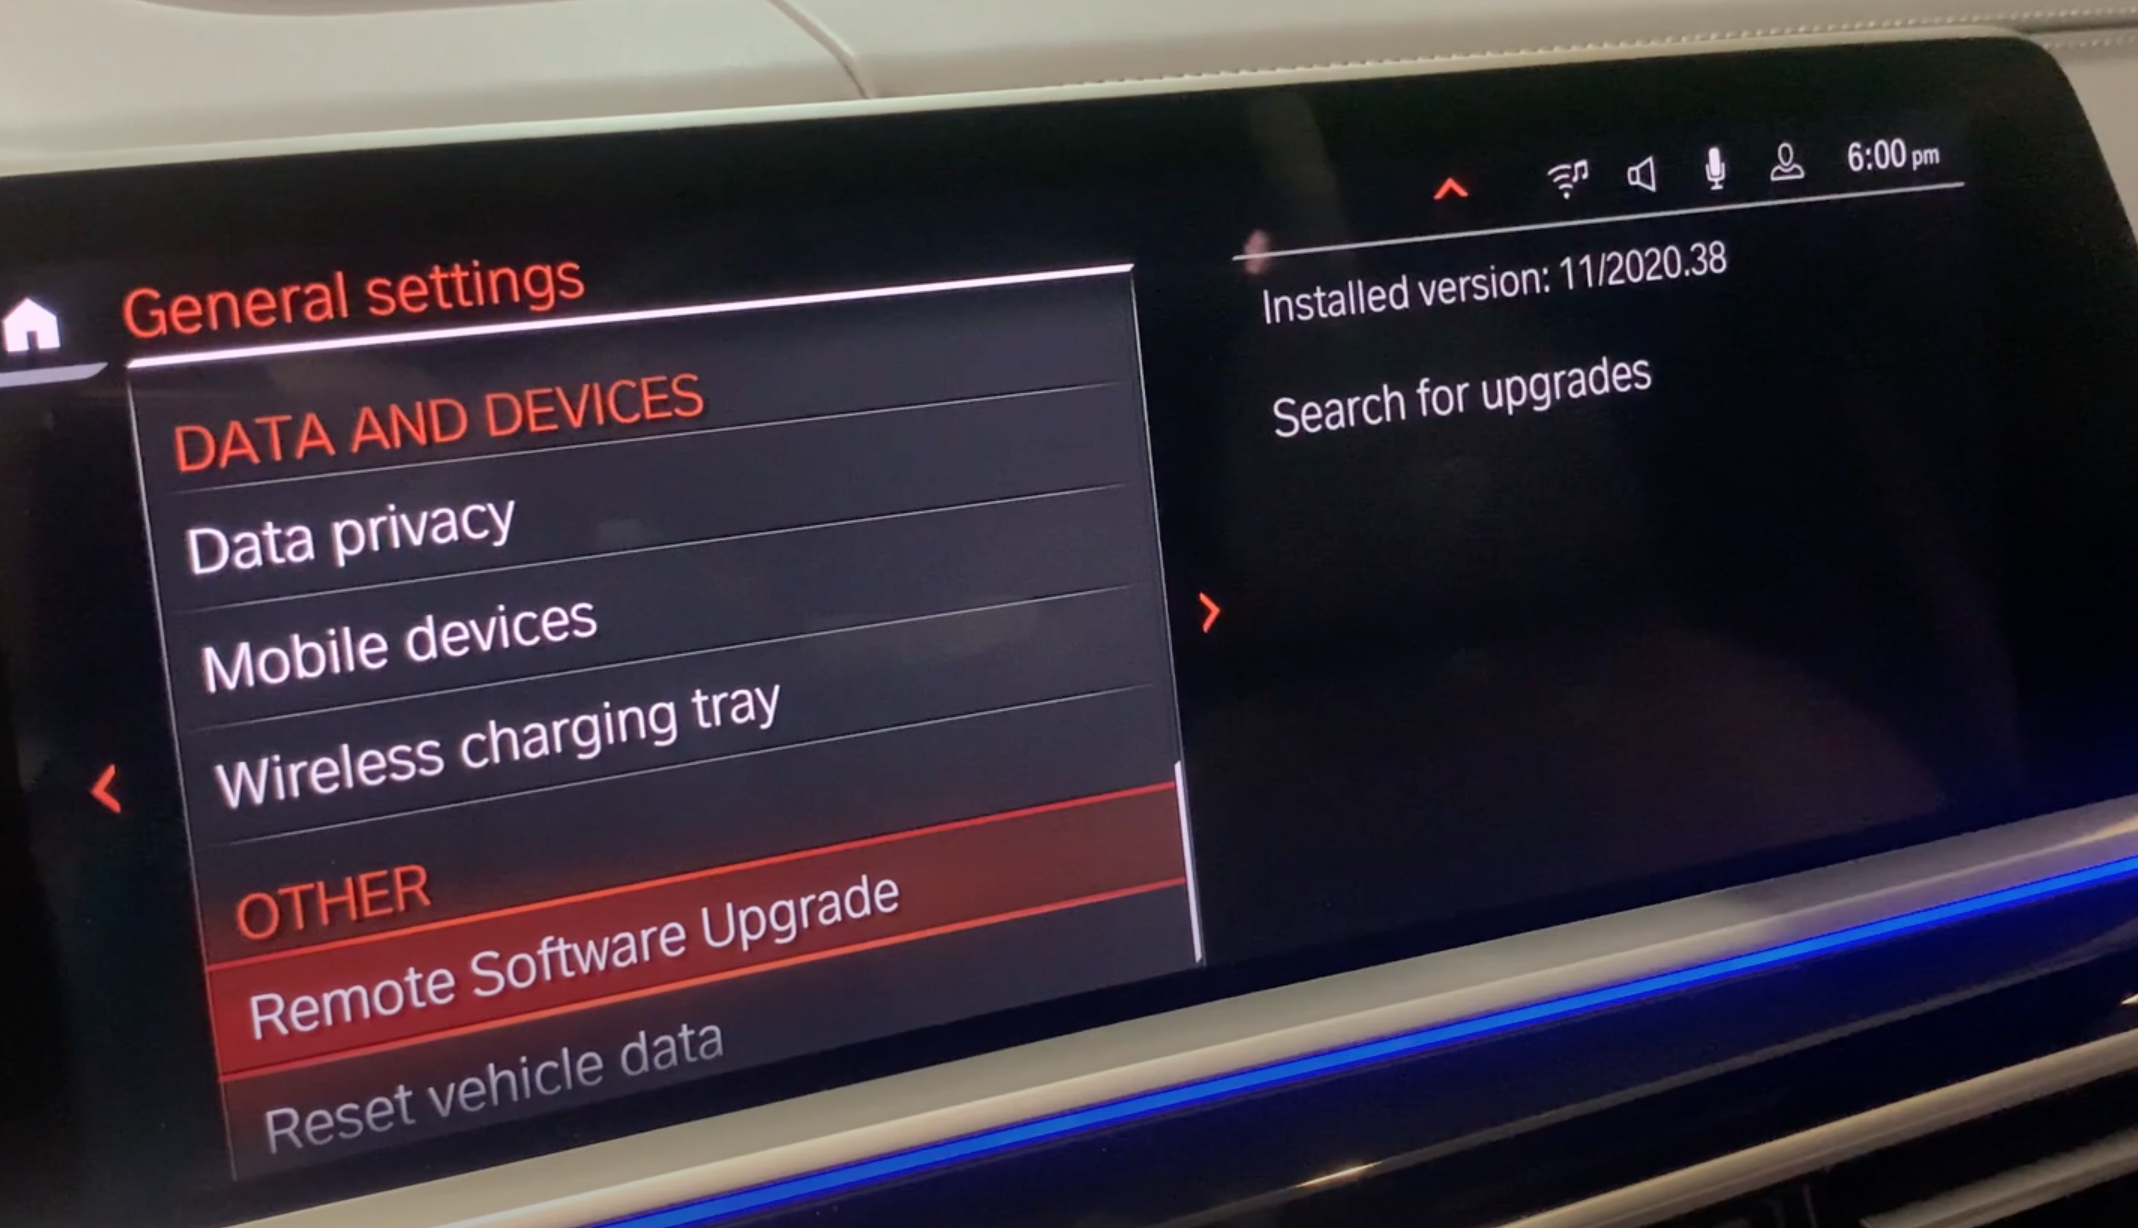 Remote software upgrade chosen from a list of general settings for the infotainment system